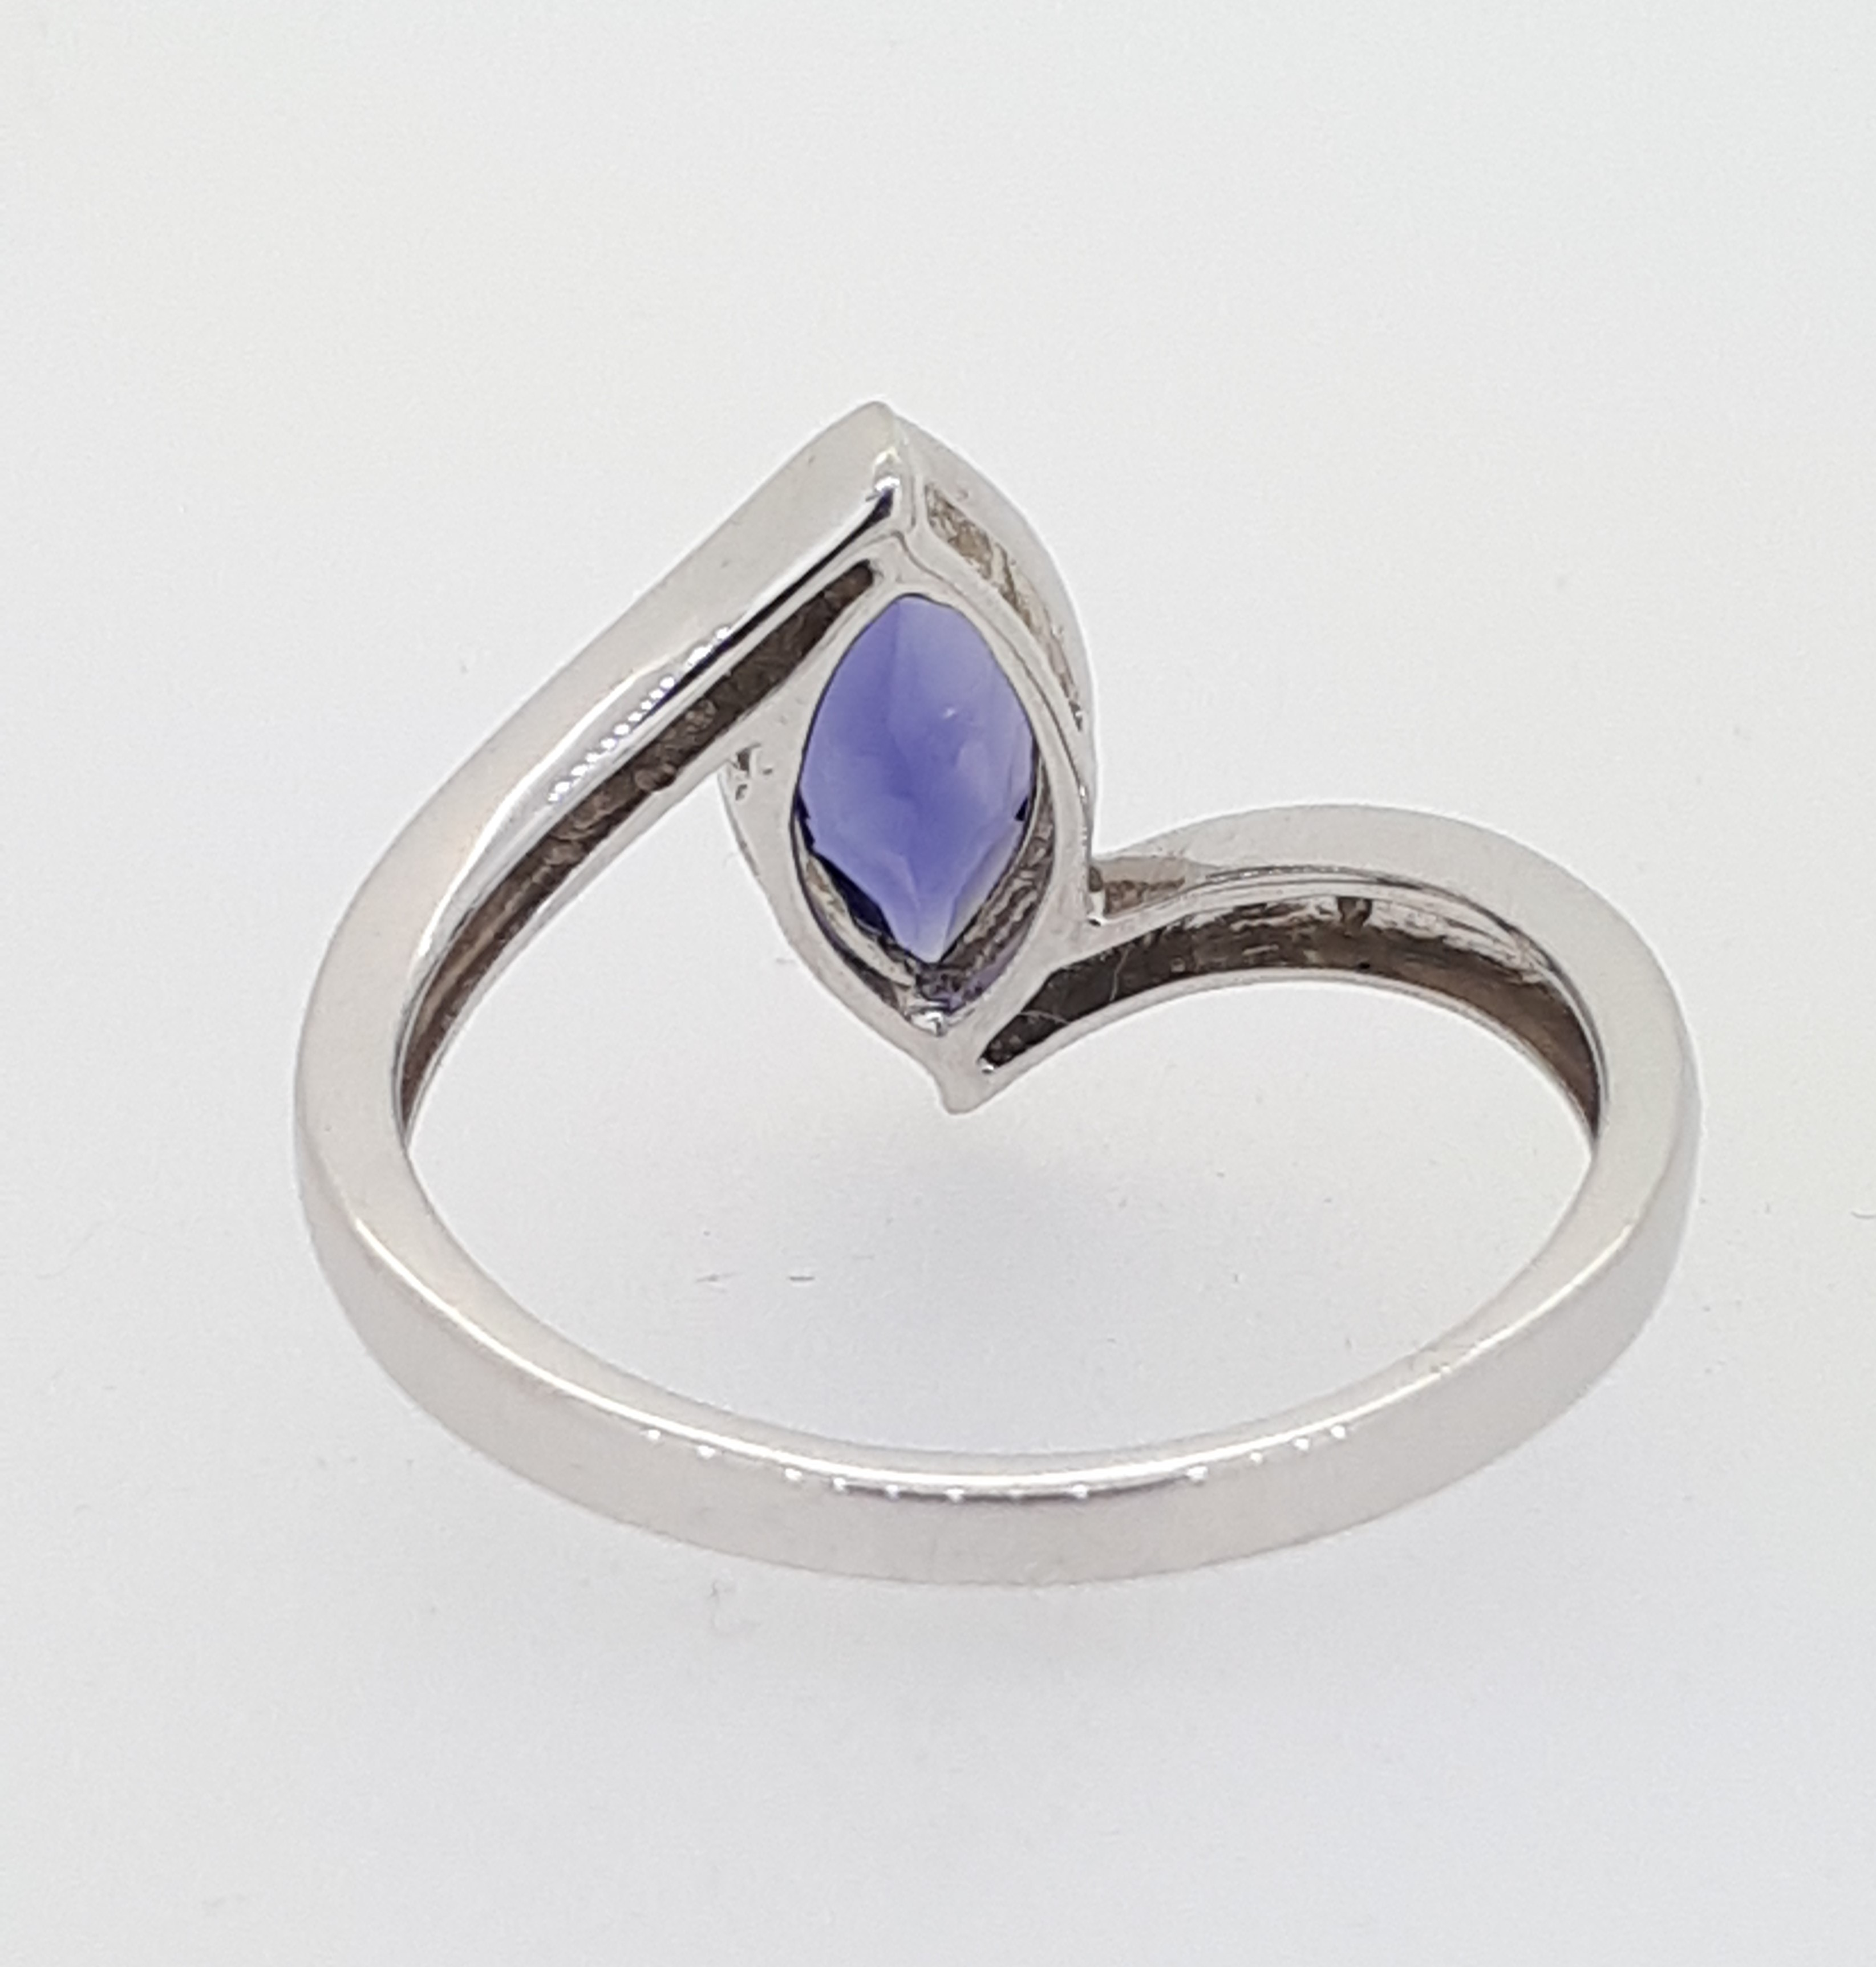 9ct (375) White Gold Diamond & Marquise Iolite Crossover Ring - Image 5 of 5